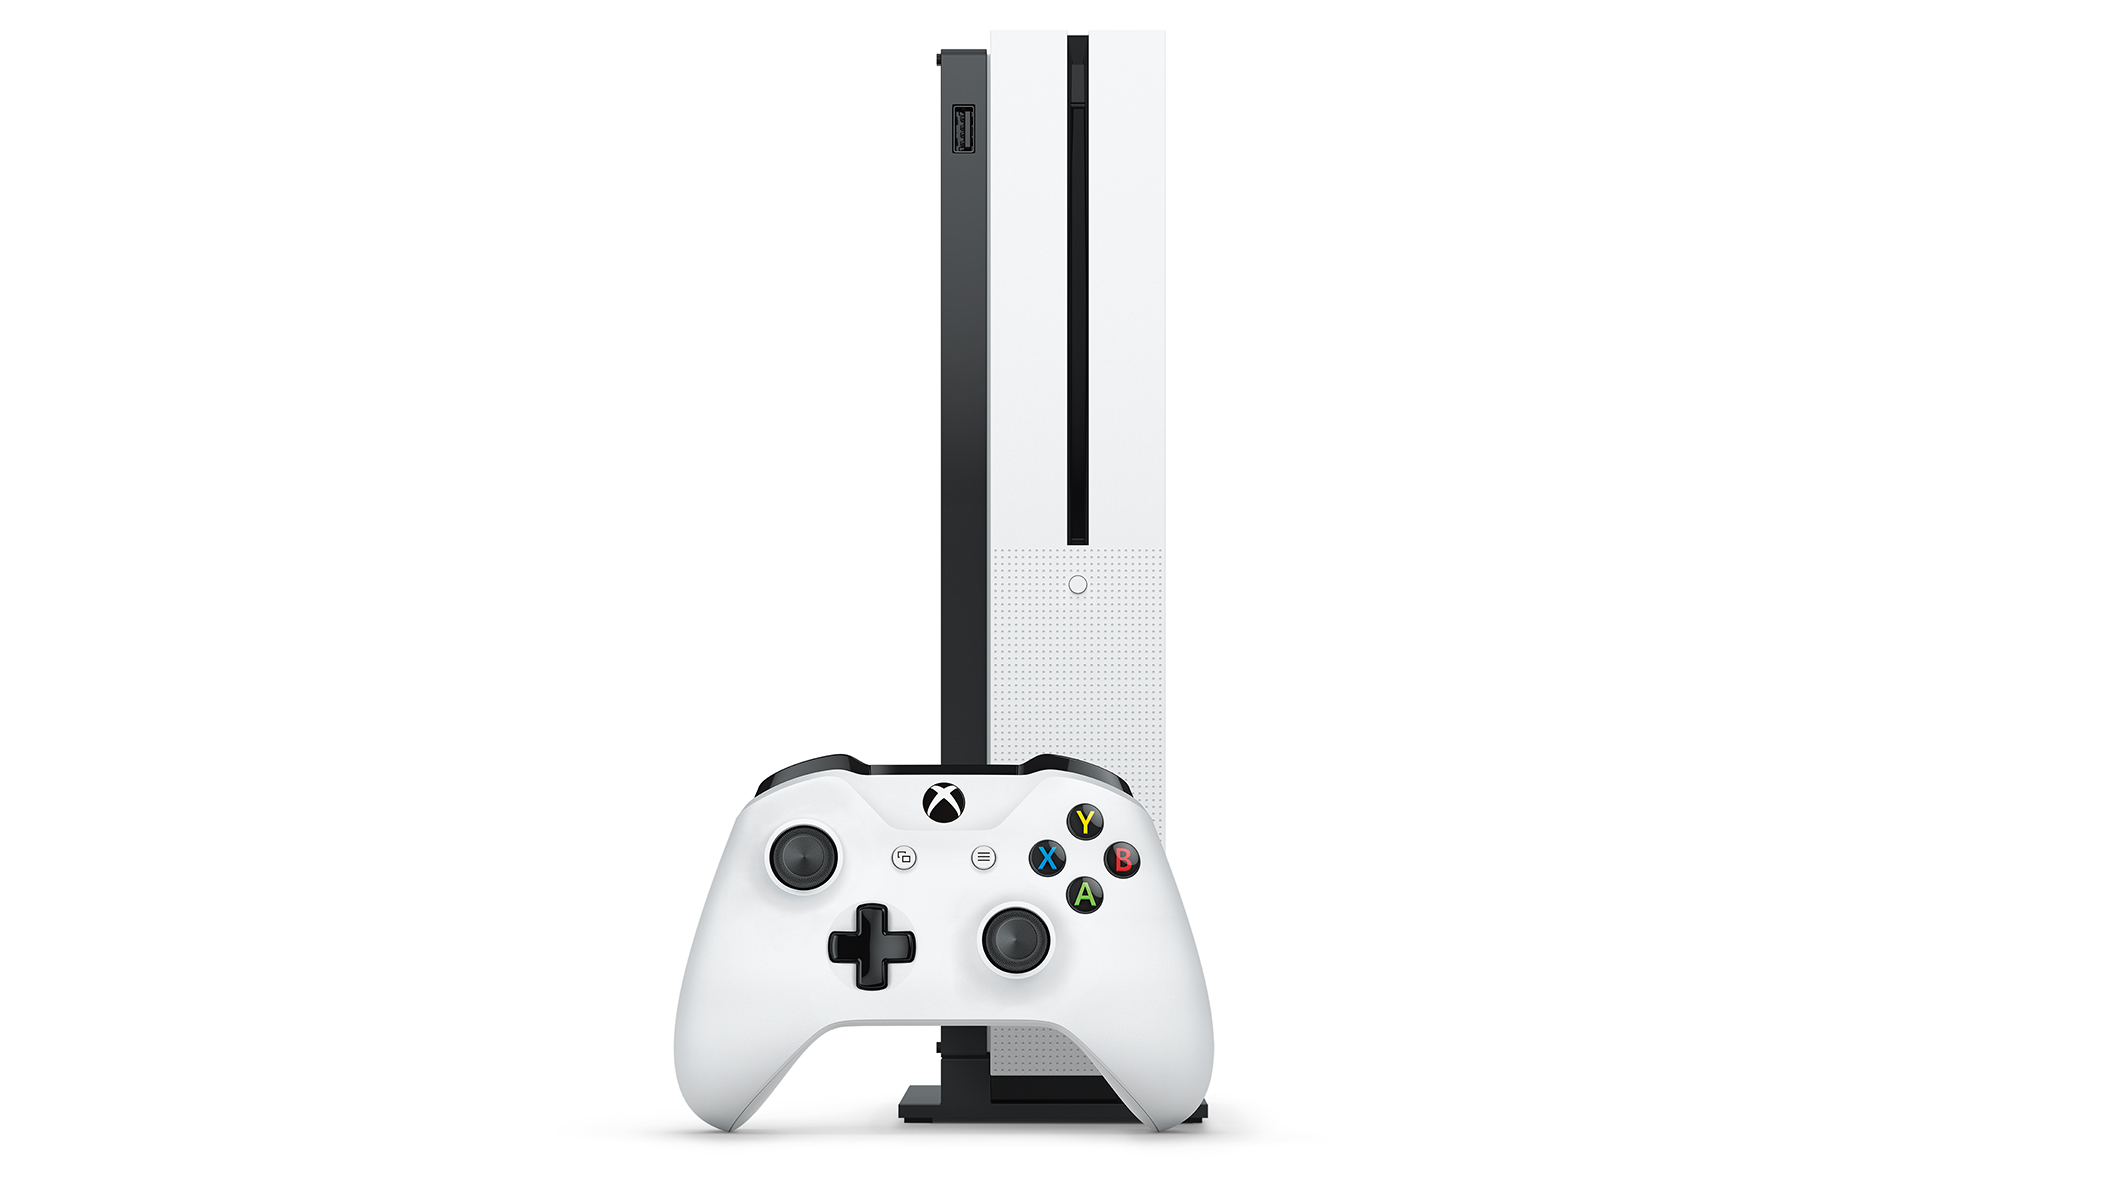 Xbox One S standing position with controller.